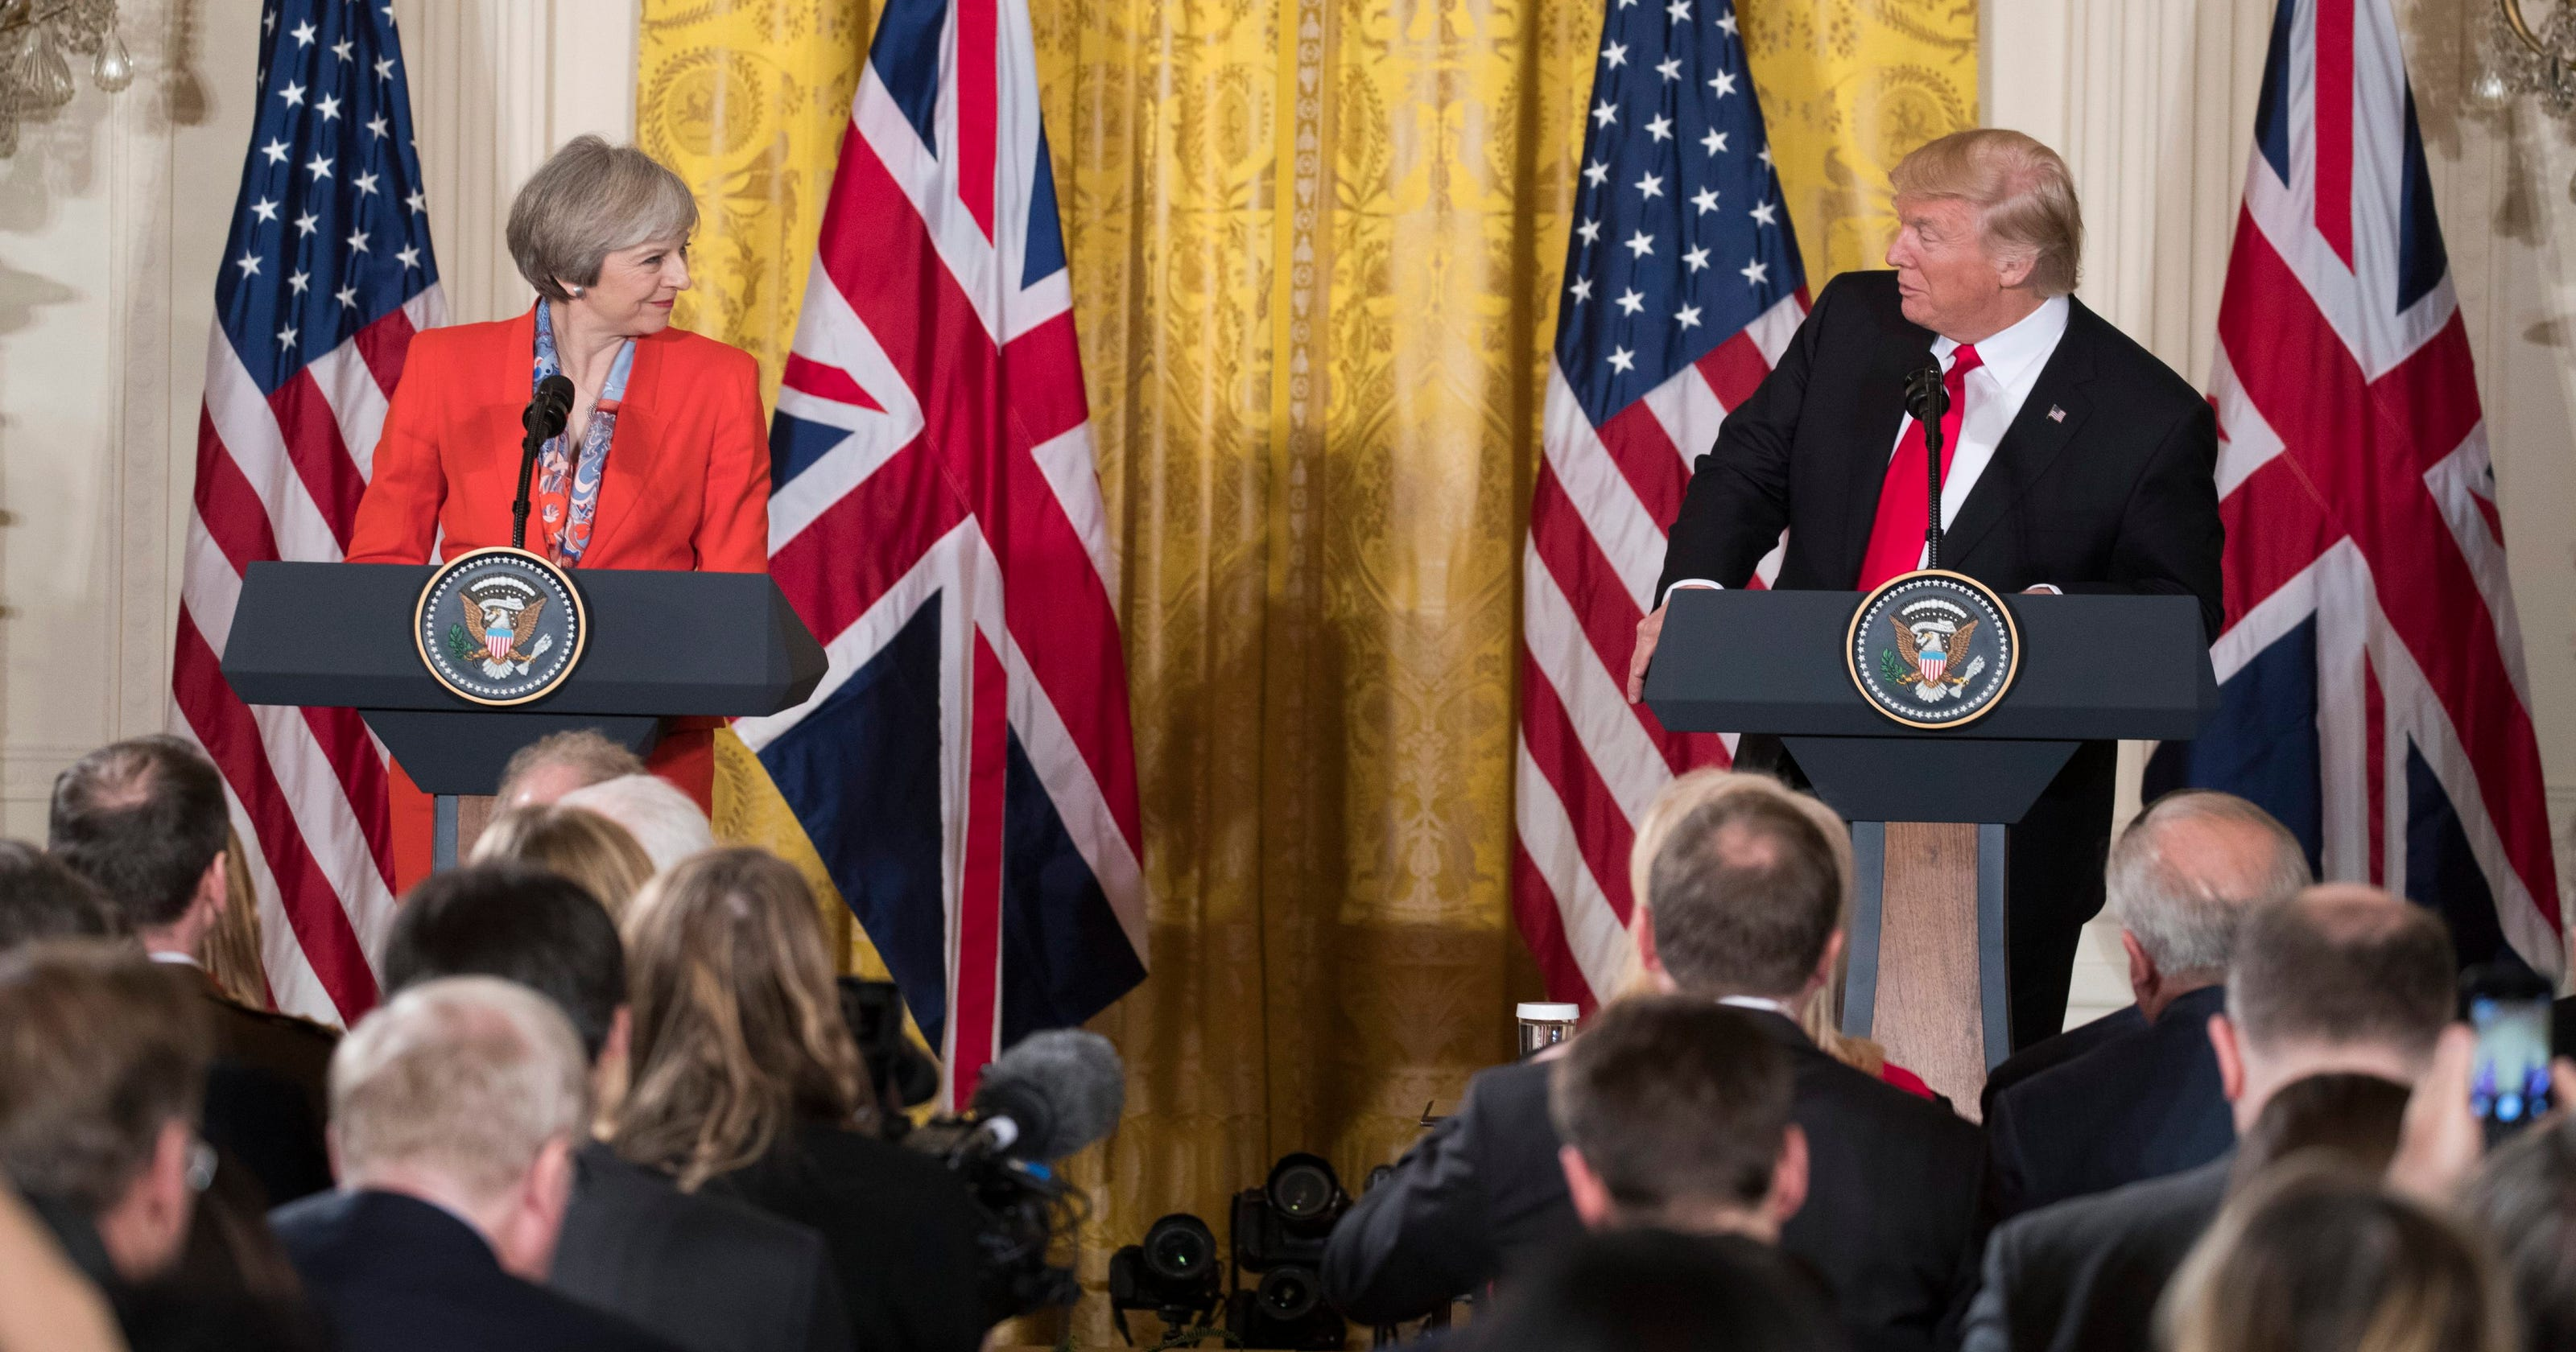 Trump Uk Prime Minister Emphasize Special Relationship At White House